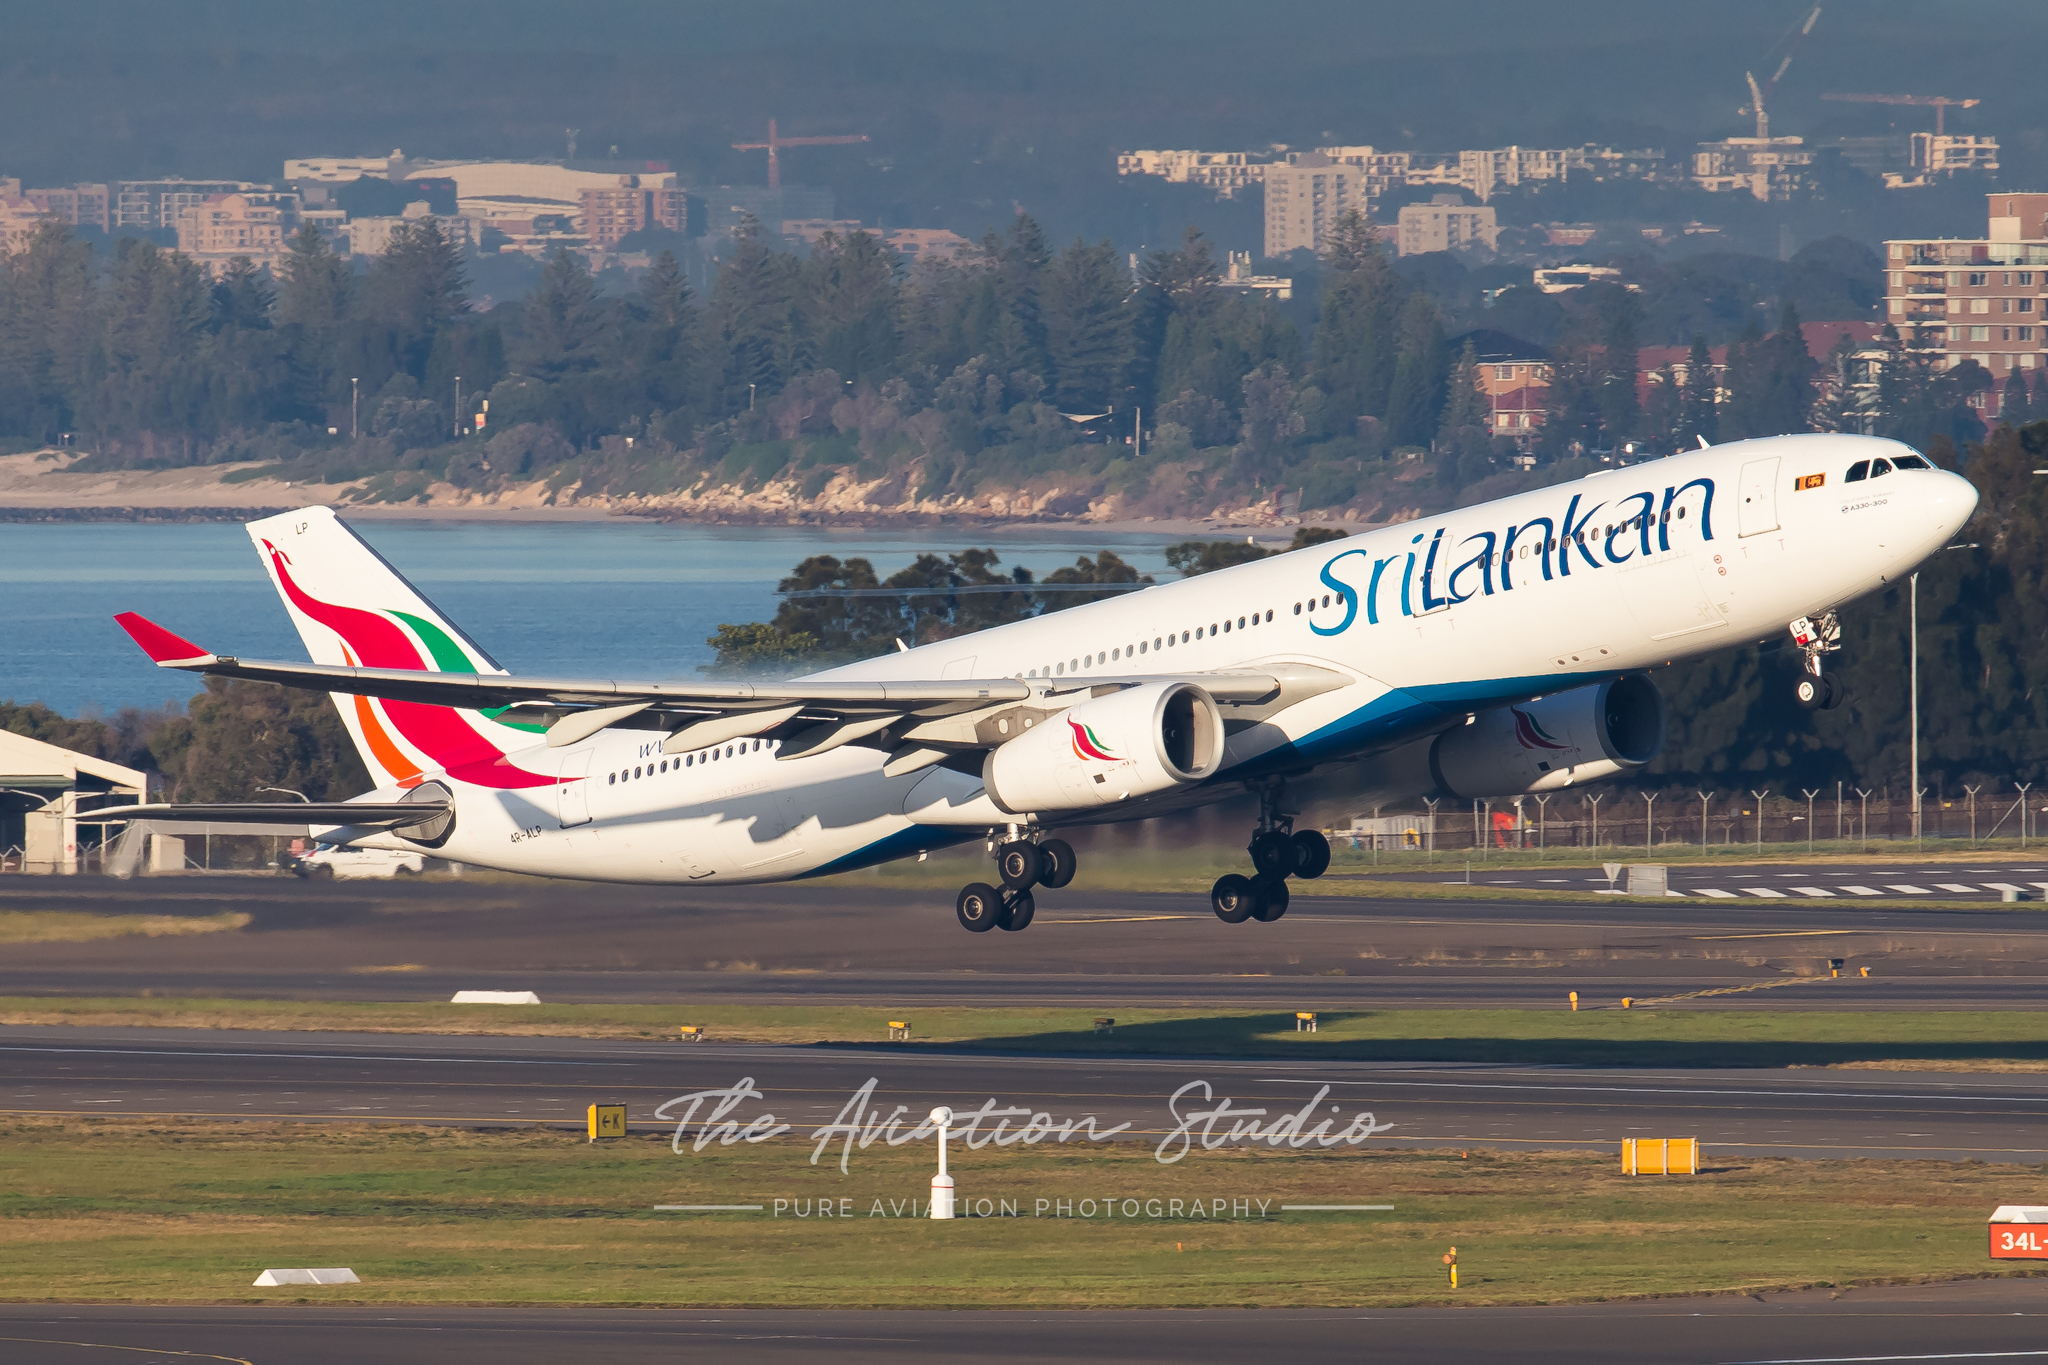 Sri Lankan Airlines Airbus A330-300 4R-ALP departs Sydney (Image: Rory Delaney)